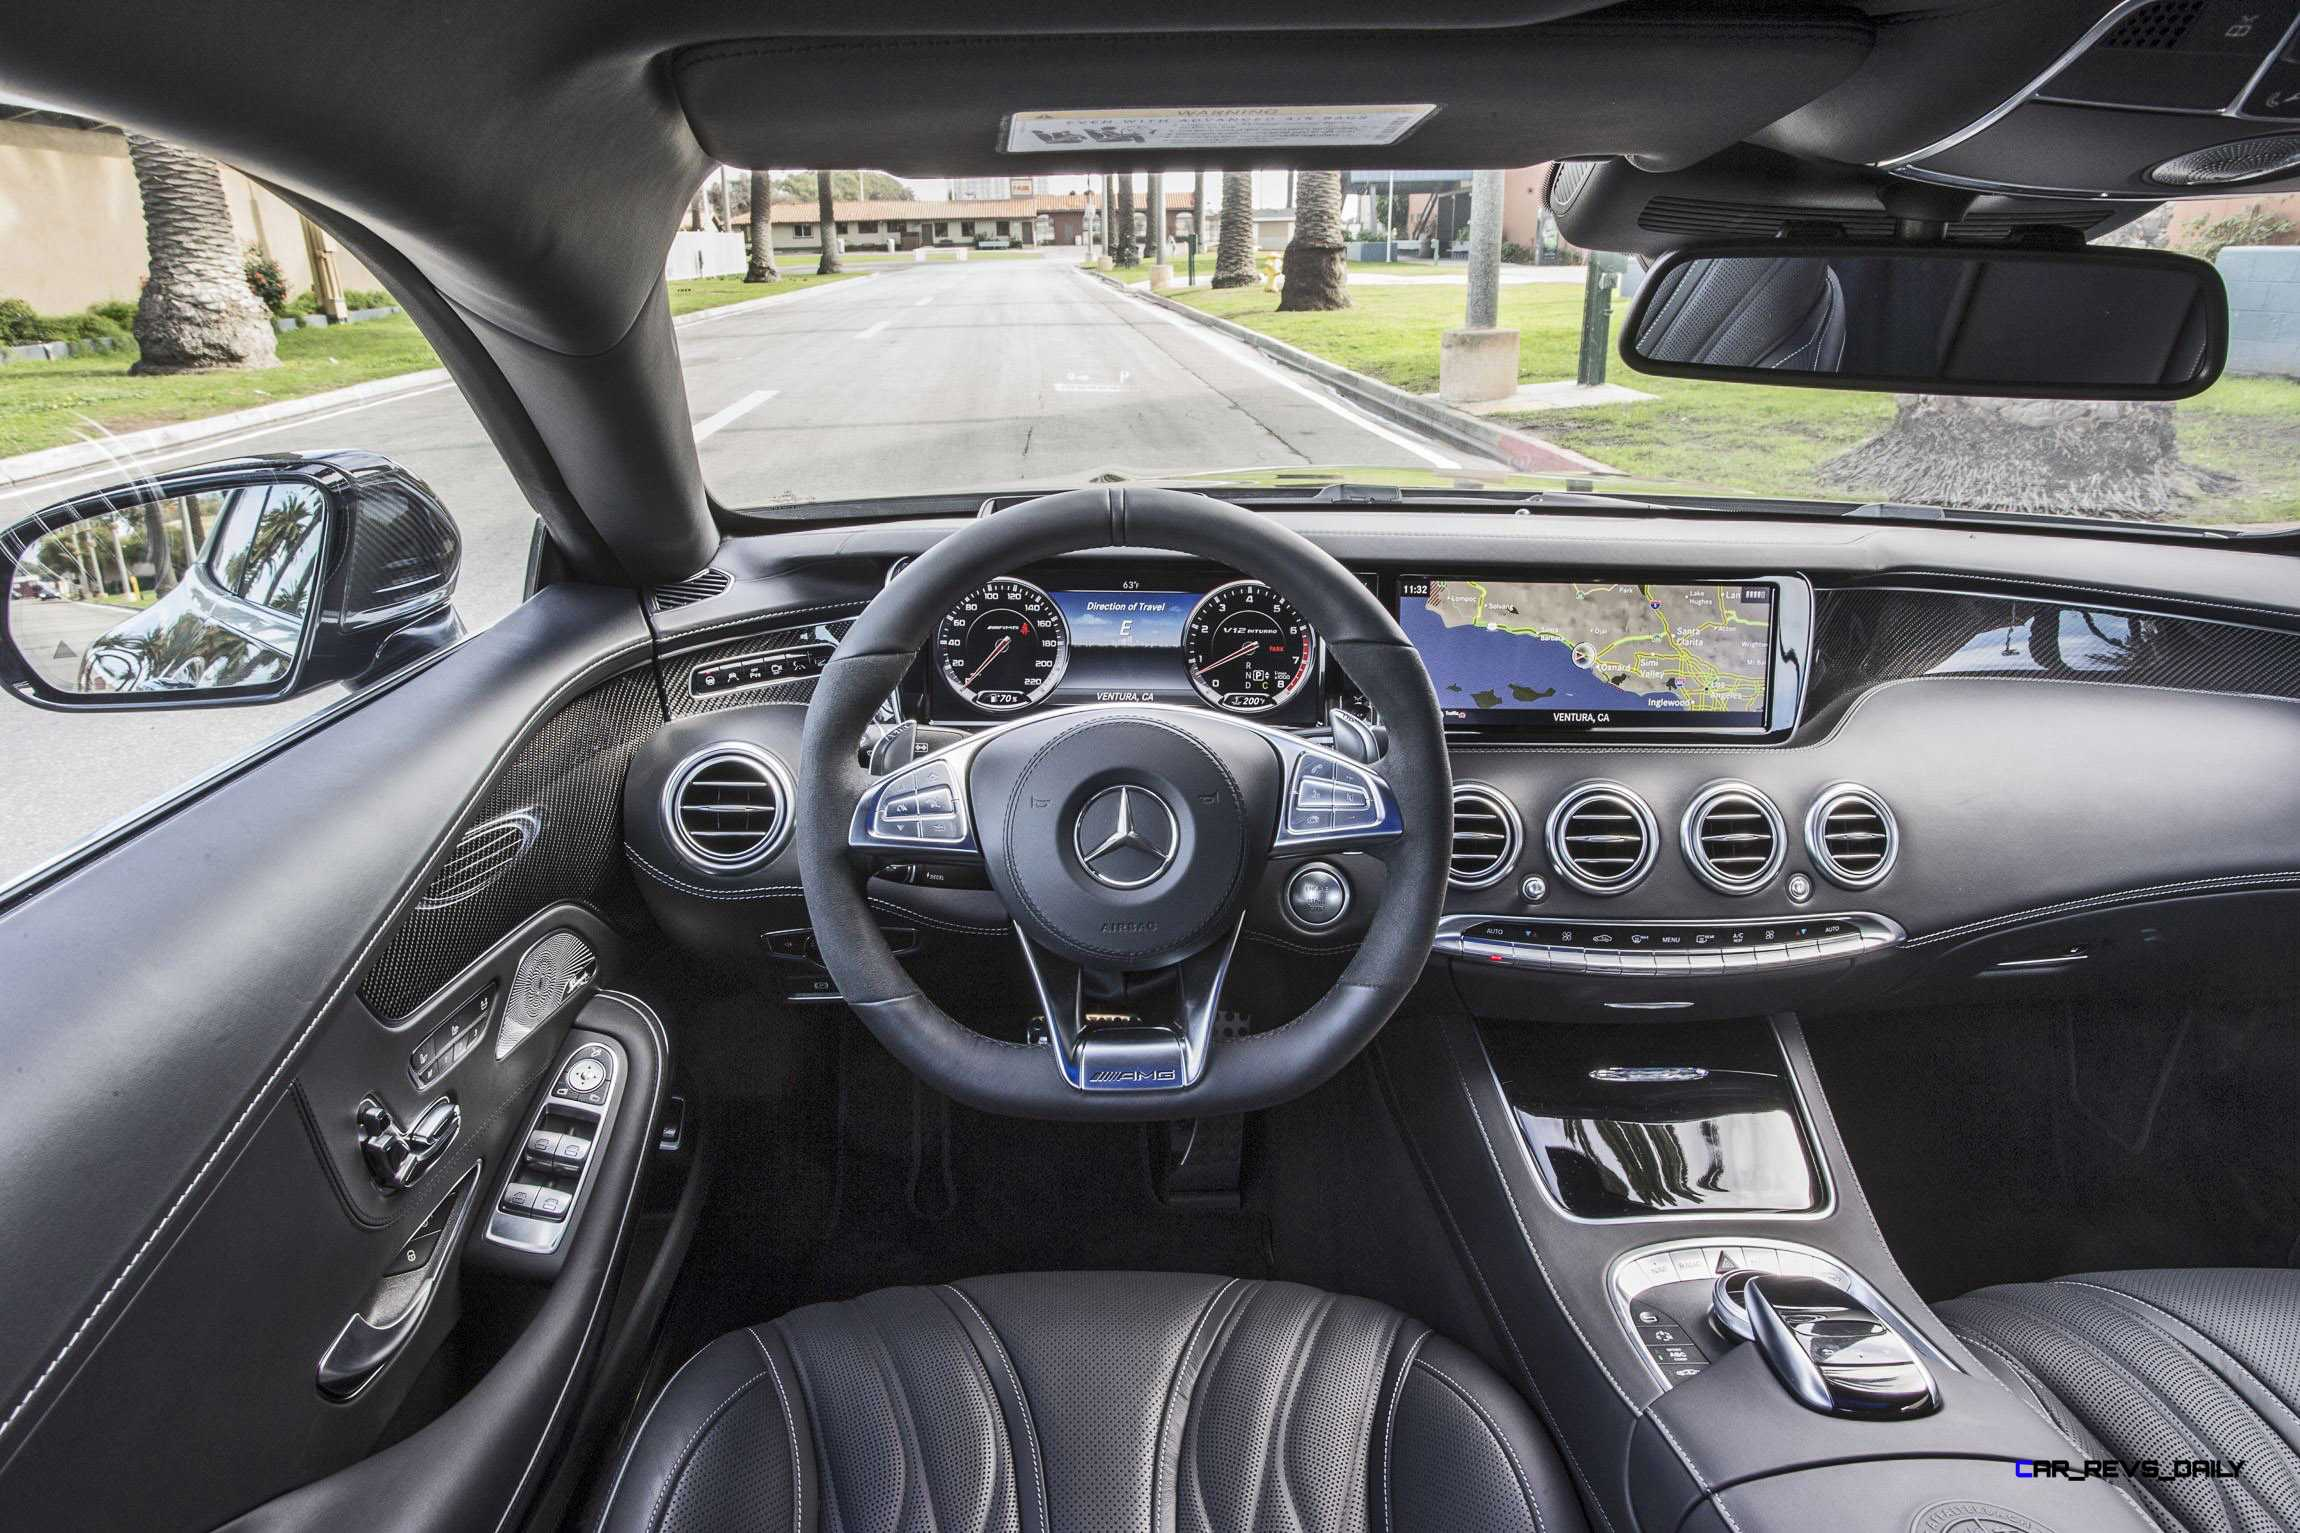 http://www.car-revs-daily.com/wp-content/uploads/2015/08/2015-Mercedes-Benz-S65-AMG-Coupe-52.jpg